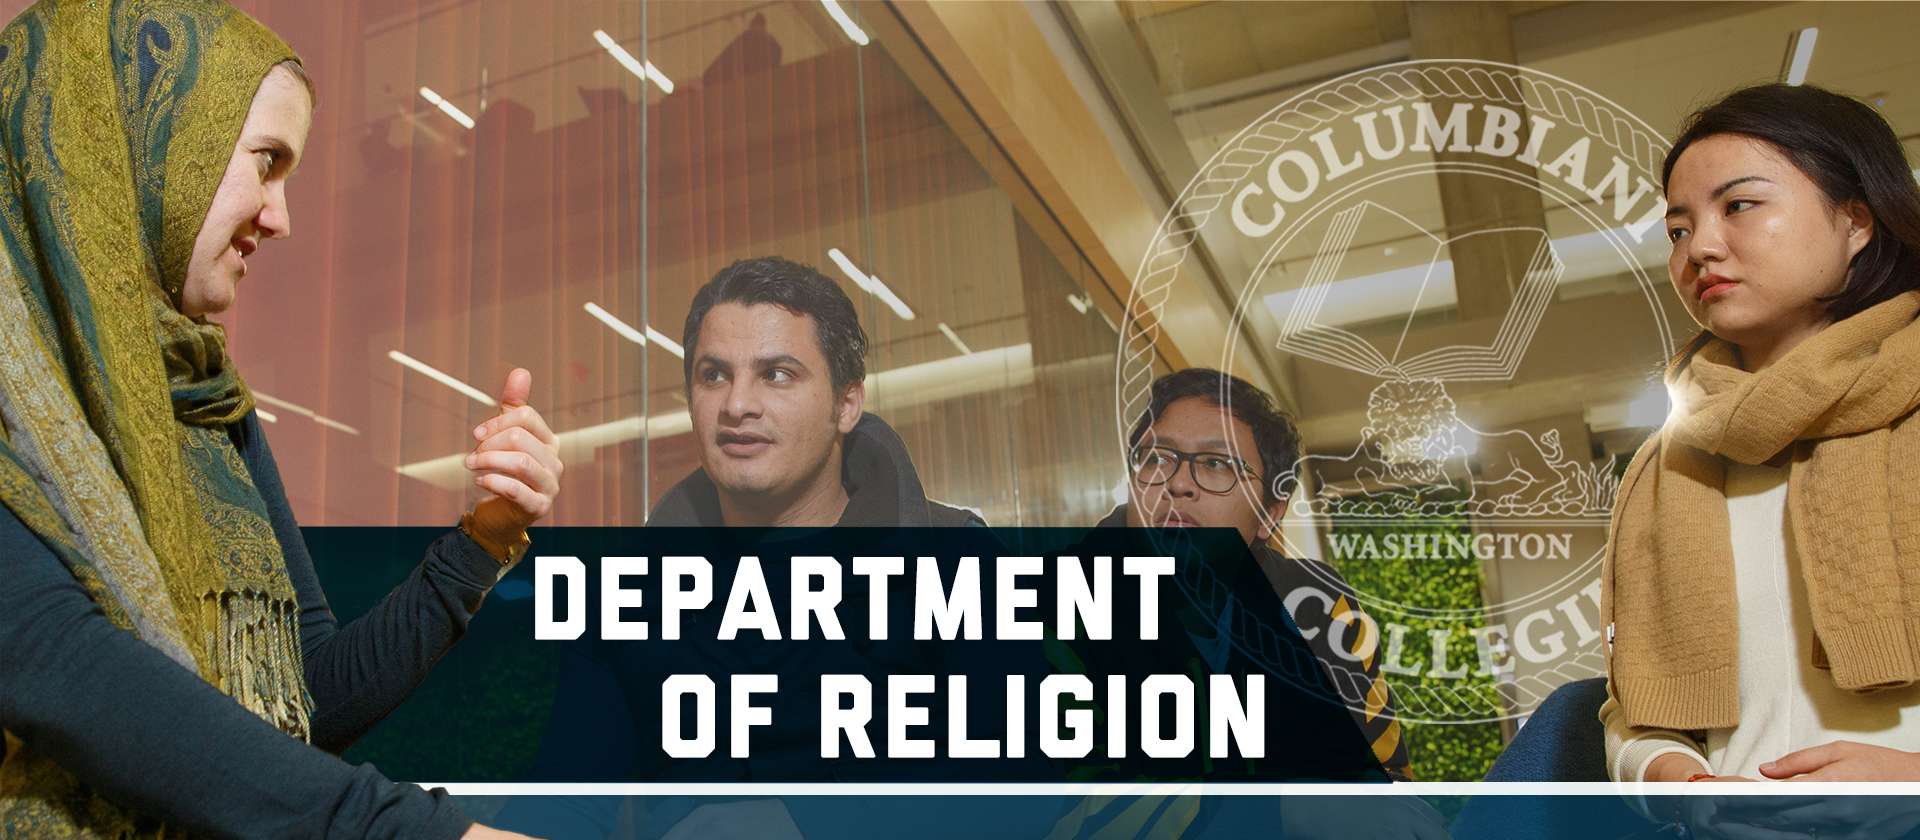 Columbian College Department of Religion. A group of four students talking